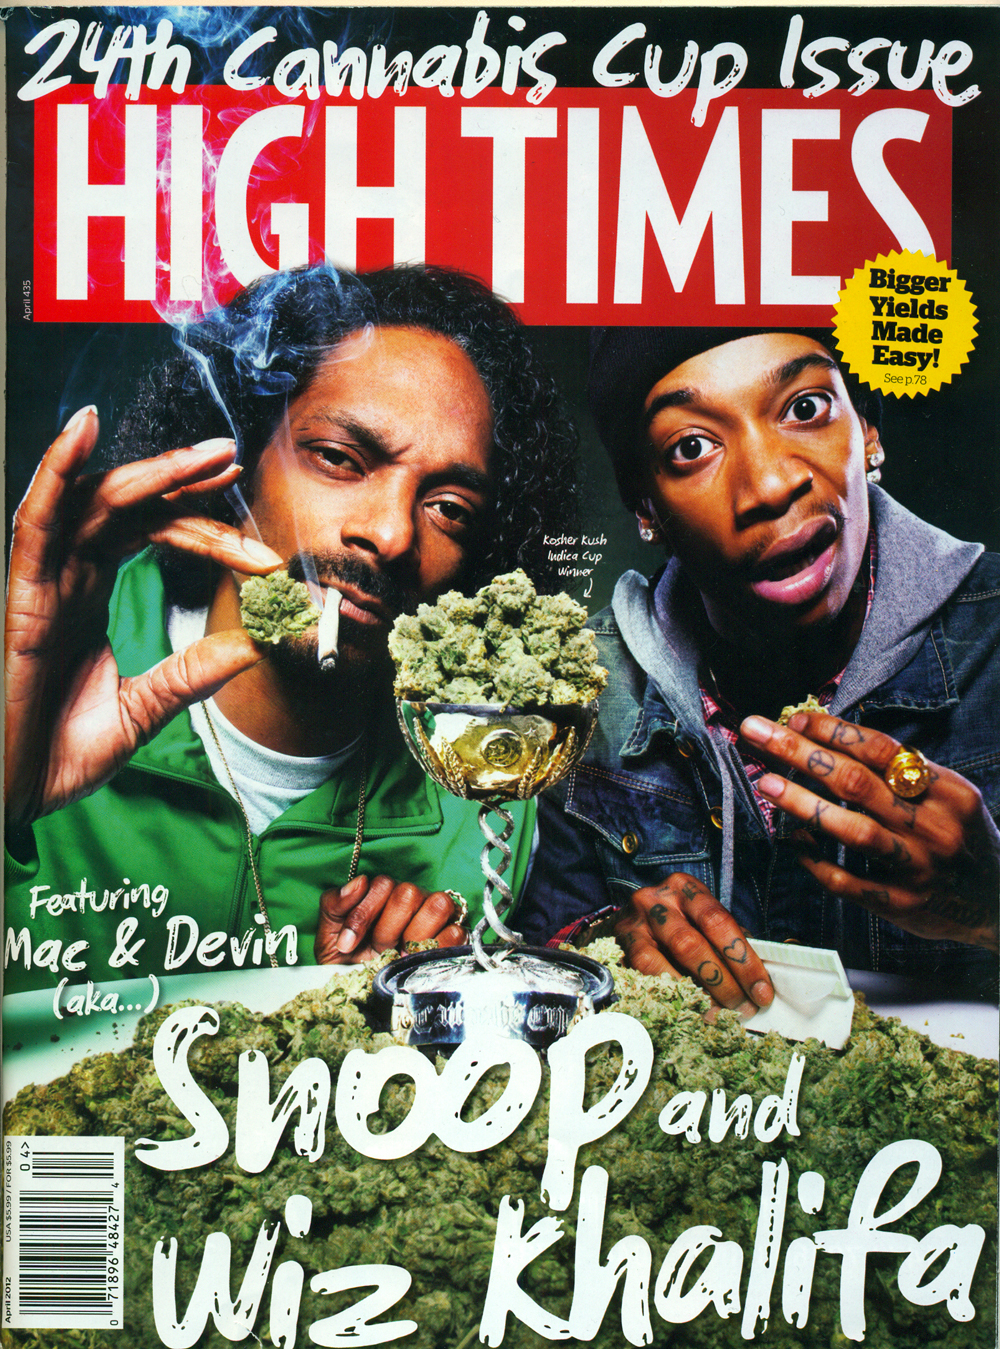 hightimes_april2012_p1.jpg